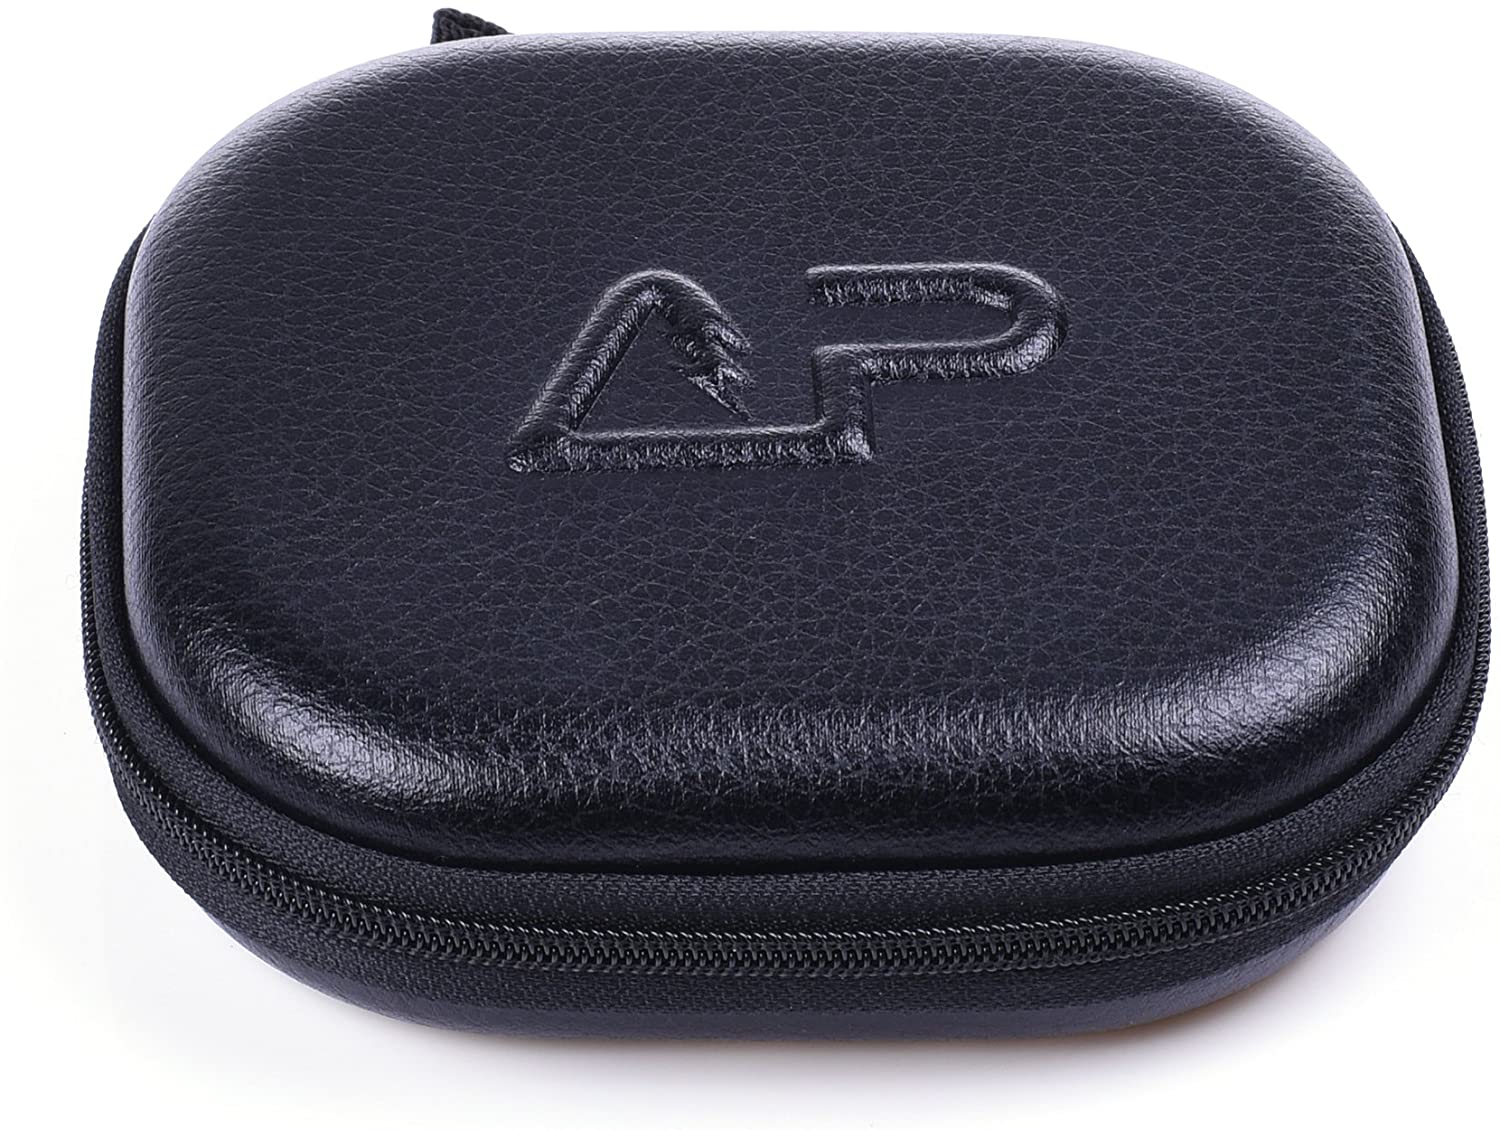 Premium In-Ear Monitor Earphone Protection Hard Case Bag